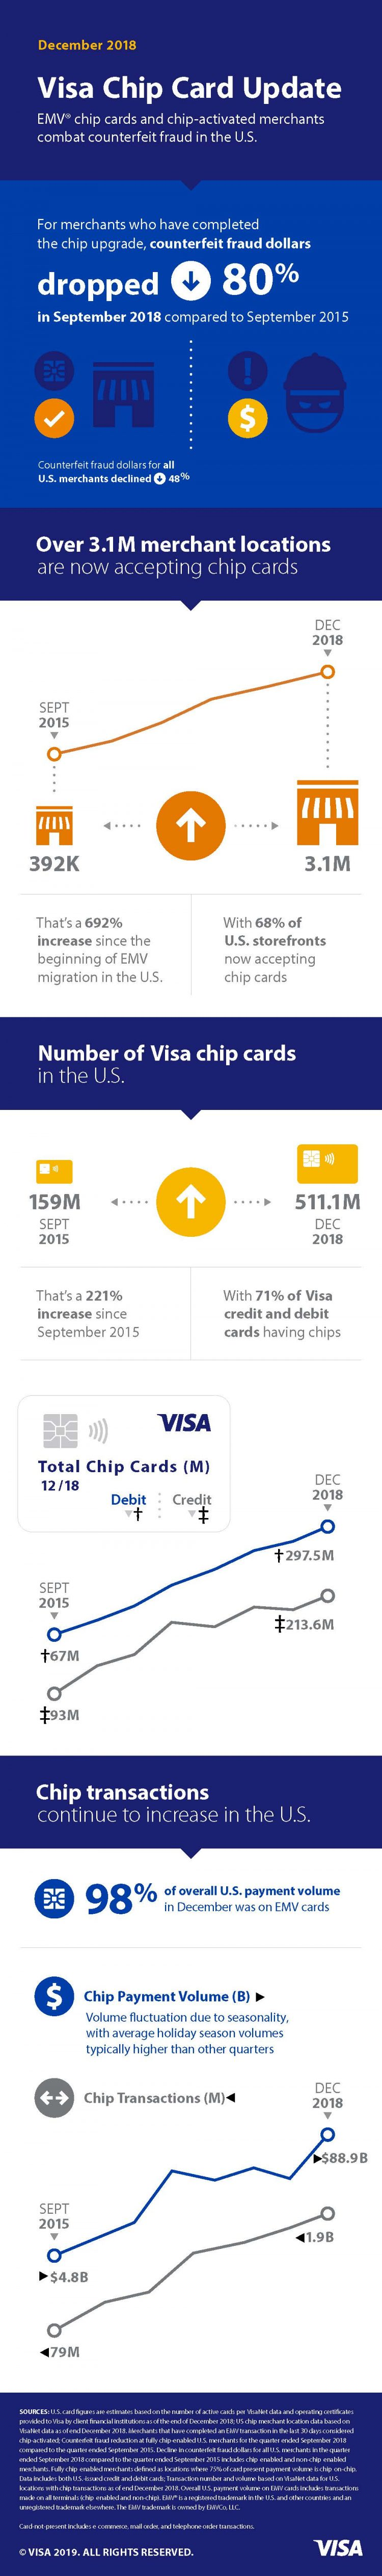 Visa Chip Card Update